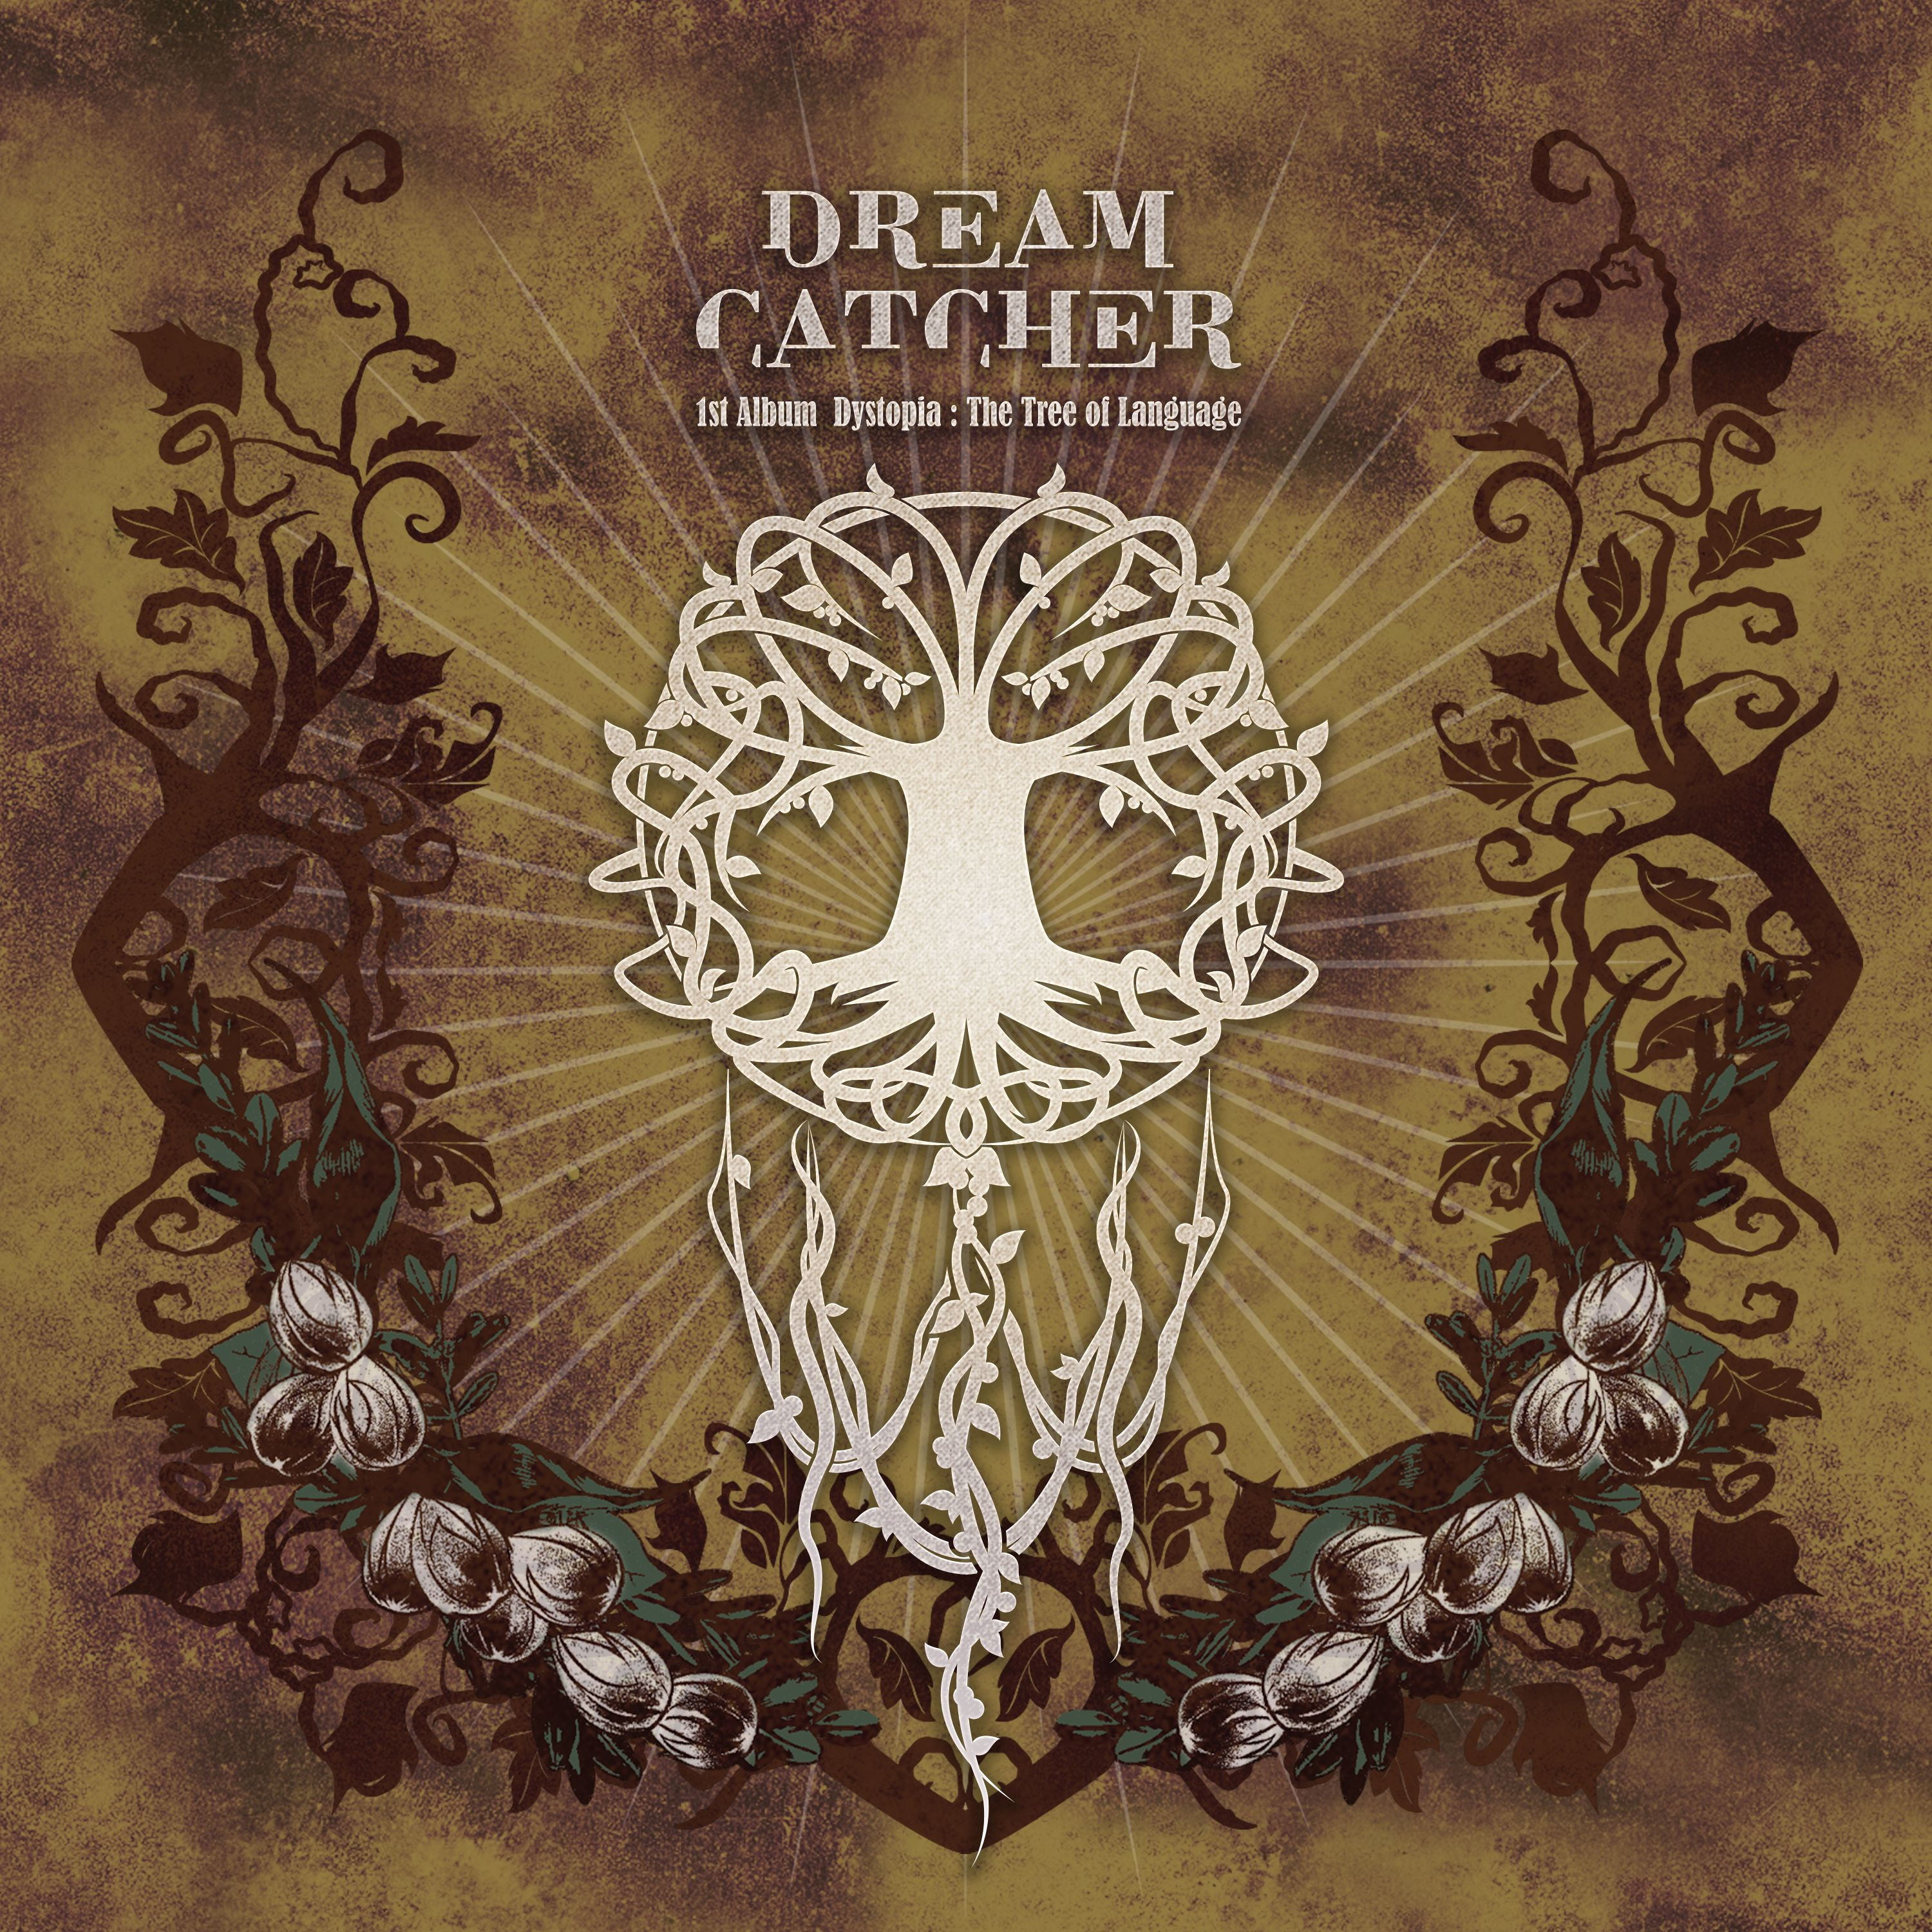 DREAMCATCHER - 'Dystopia : The Tree of Language' Album Lyrics in ...